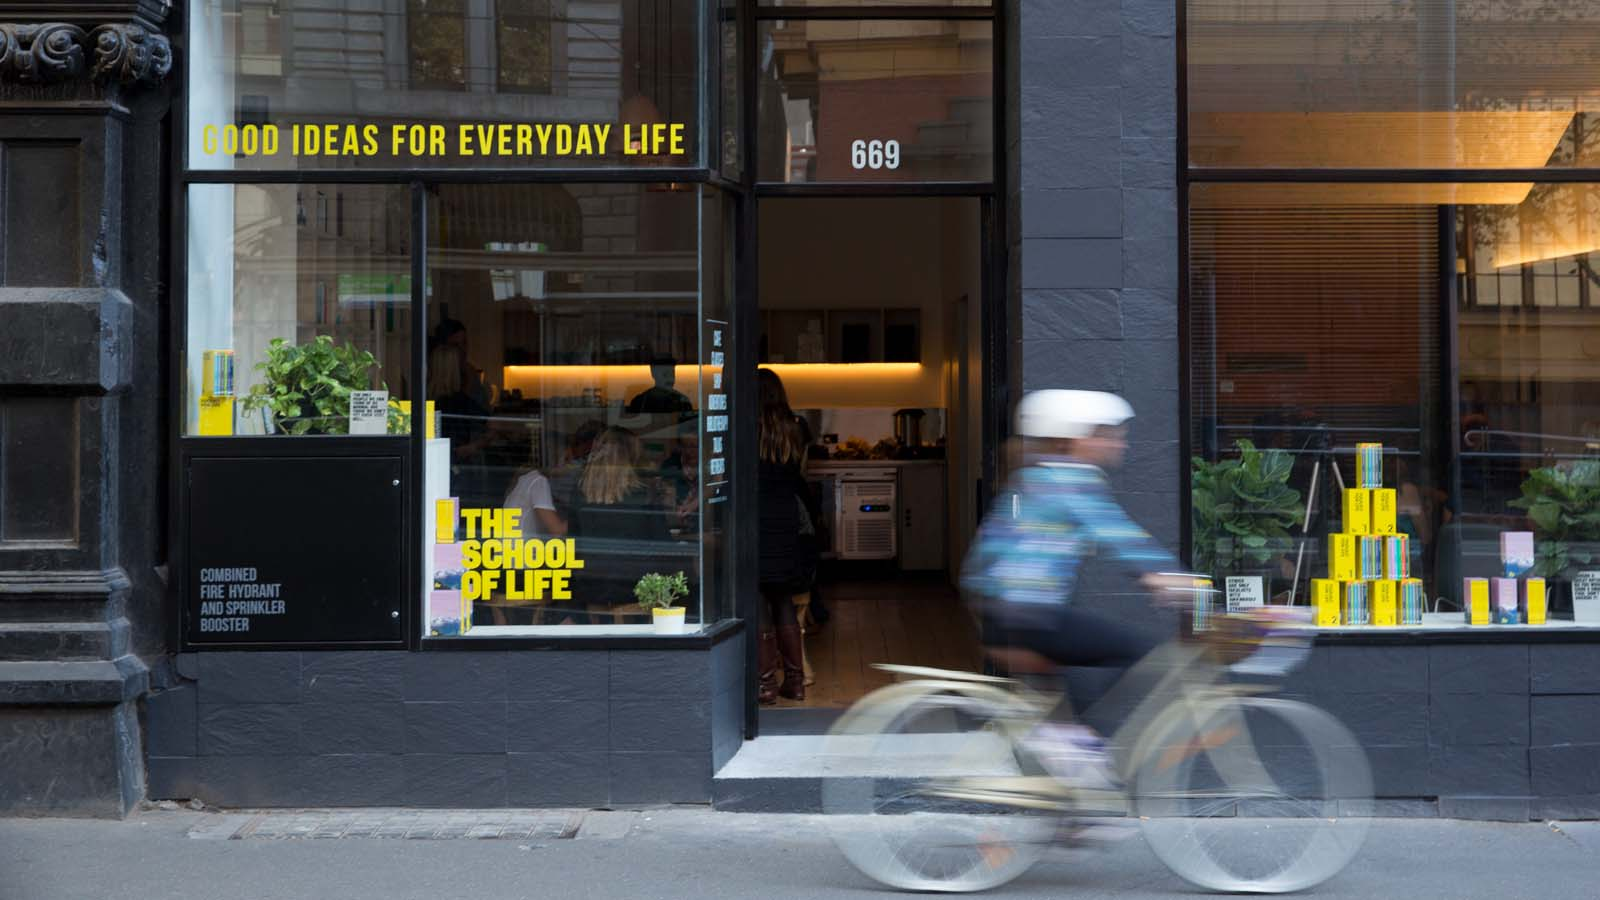 The School of Life, Melbourne, Victoria, Australia. Photo: Hilary Walker